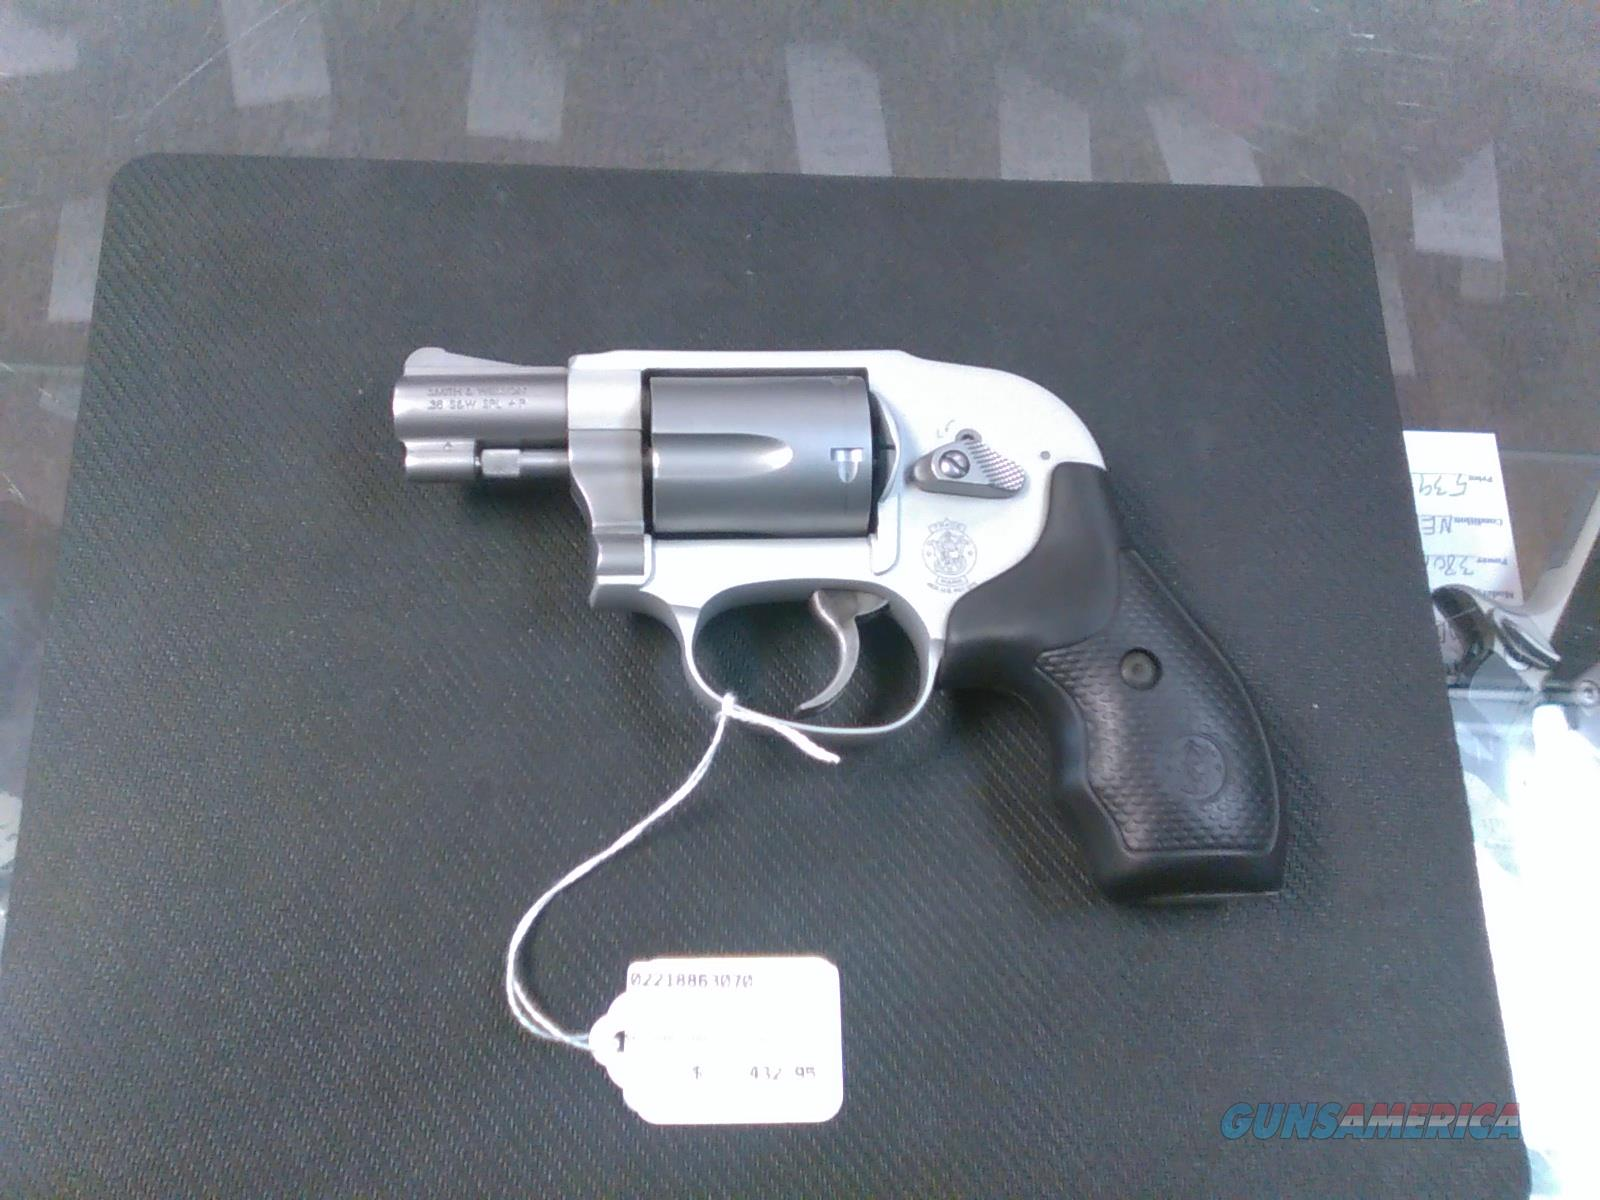 Smith and Wesson 638 .38 SPL NO CC FEES         Guns > Pistols > Smith & Wesson Revolvers > Pocket Pistols